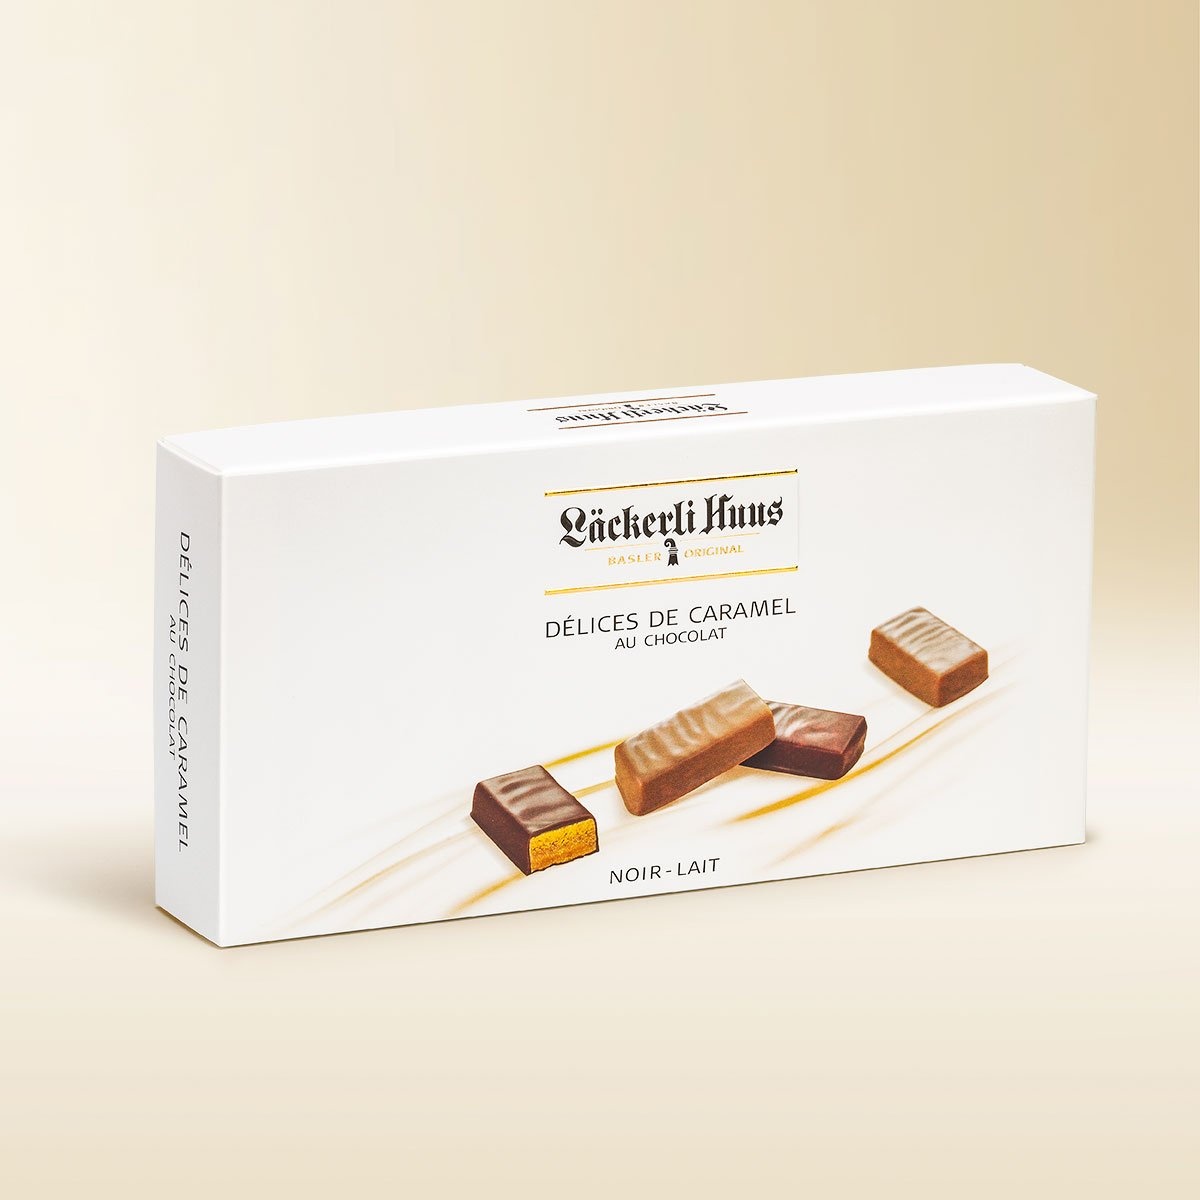 Délices de caramel au chocolat assortment 250g